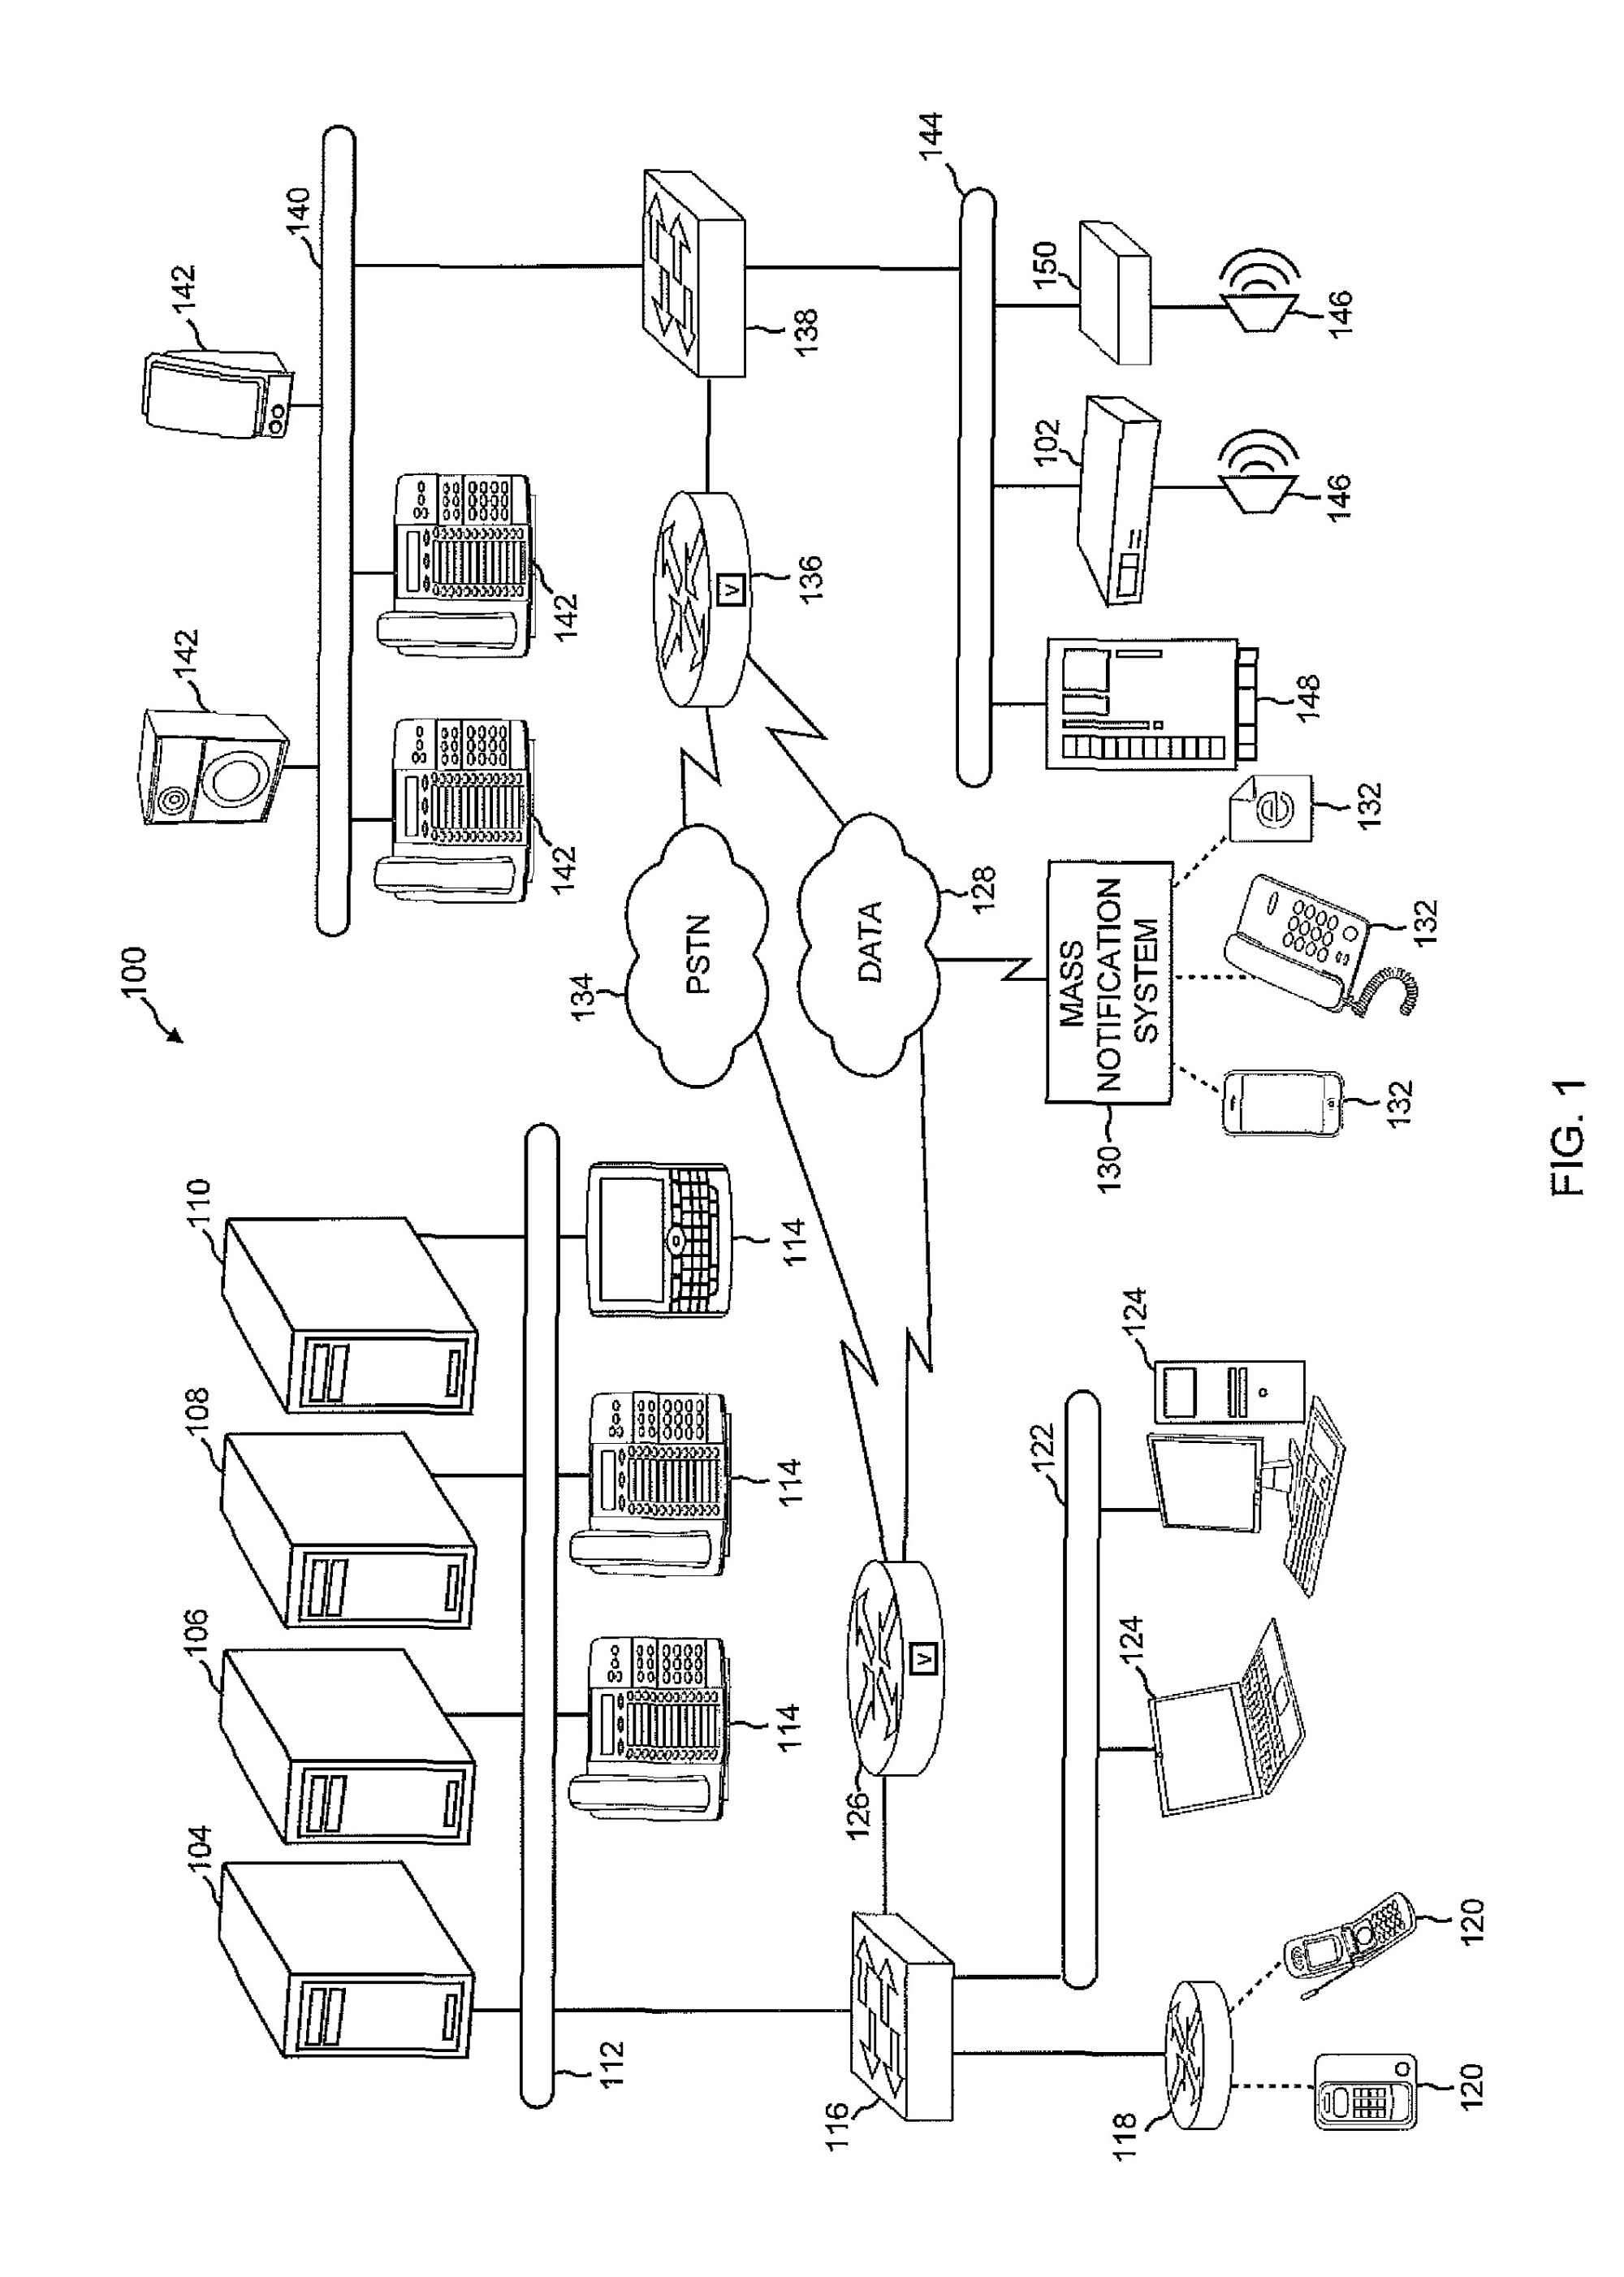 hight resolution of paging horn wiring diagram wiring diagrams scematic kleinn air horn wiring diagram paging horn wiring diagram